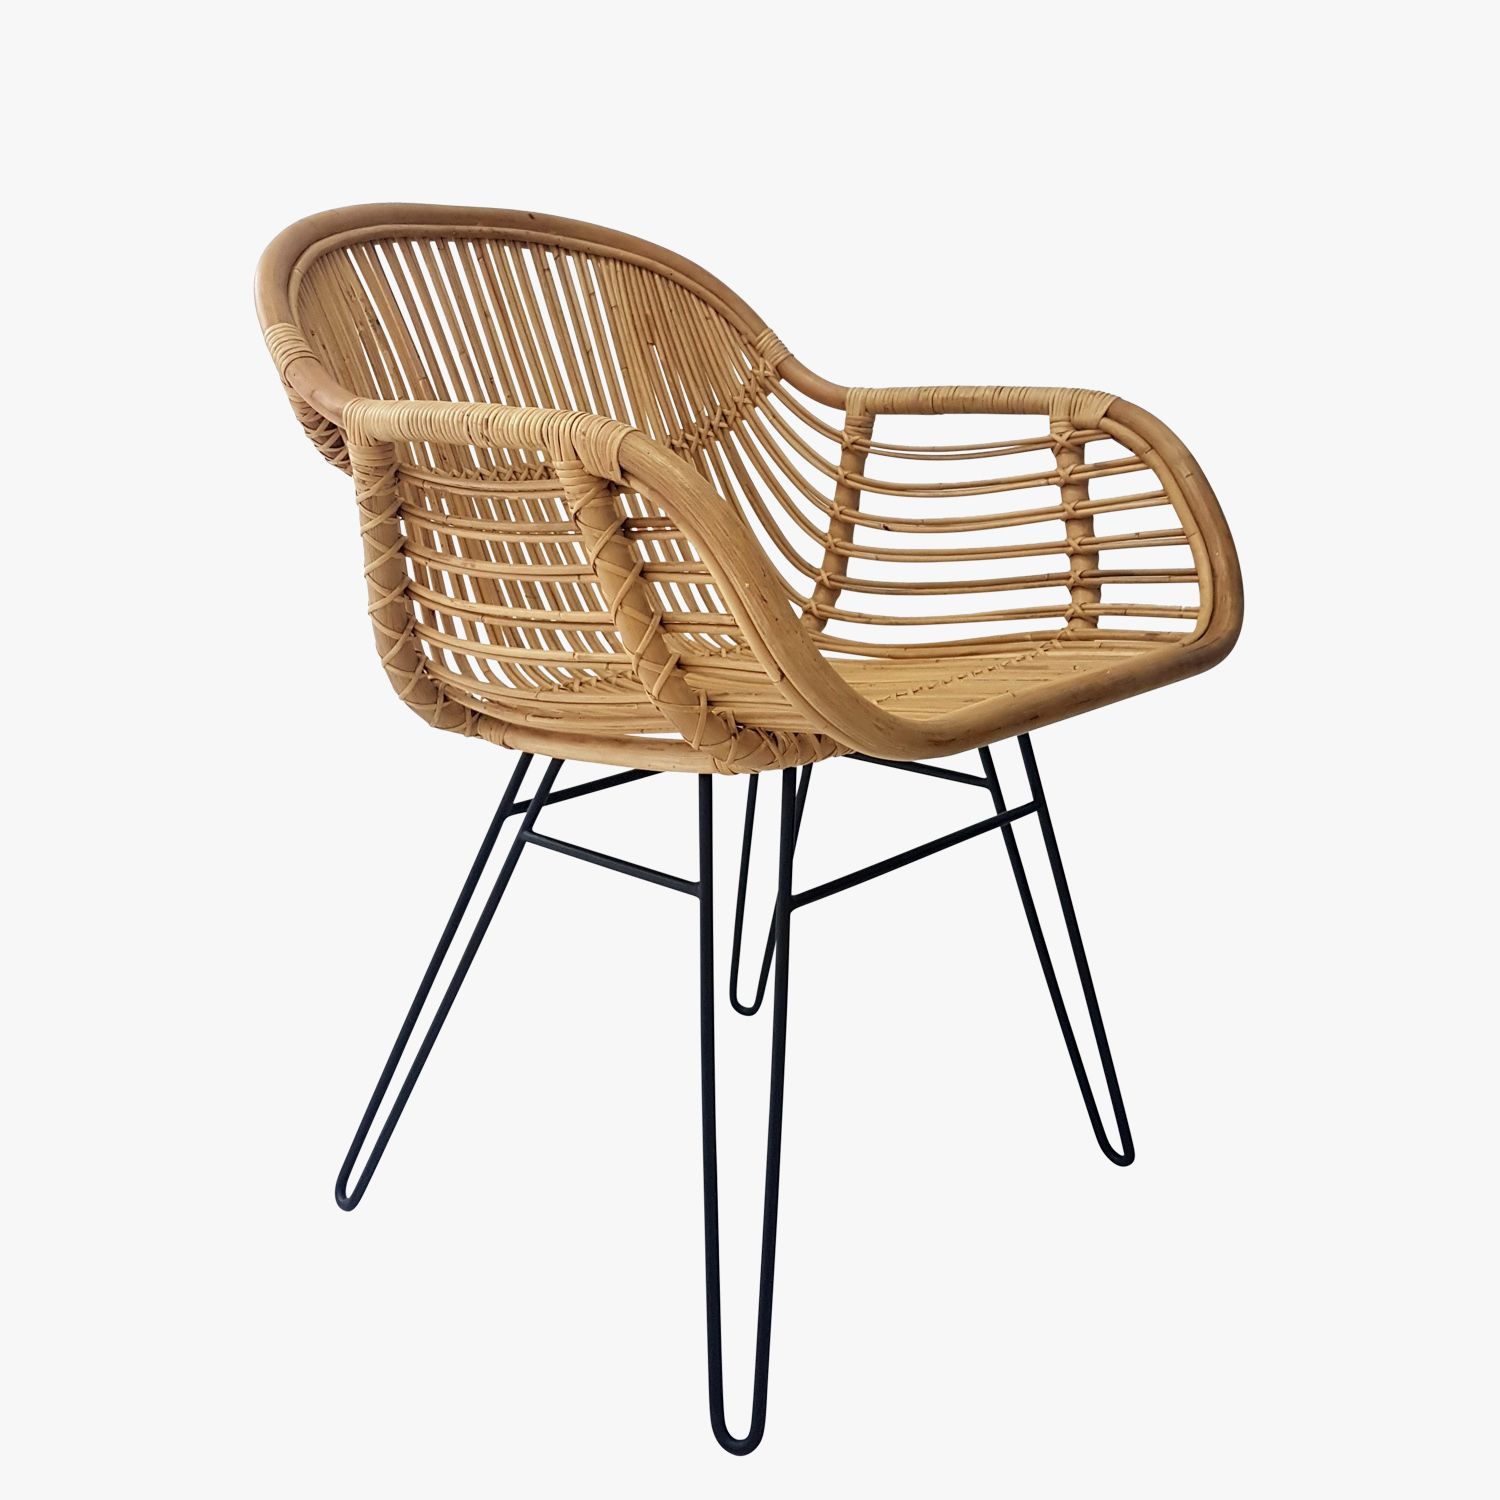 Our Ubud Modern Rattan Chair Will Lend A Laid Back Resort Vibe To Any Decor.